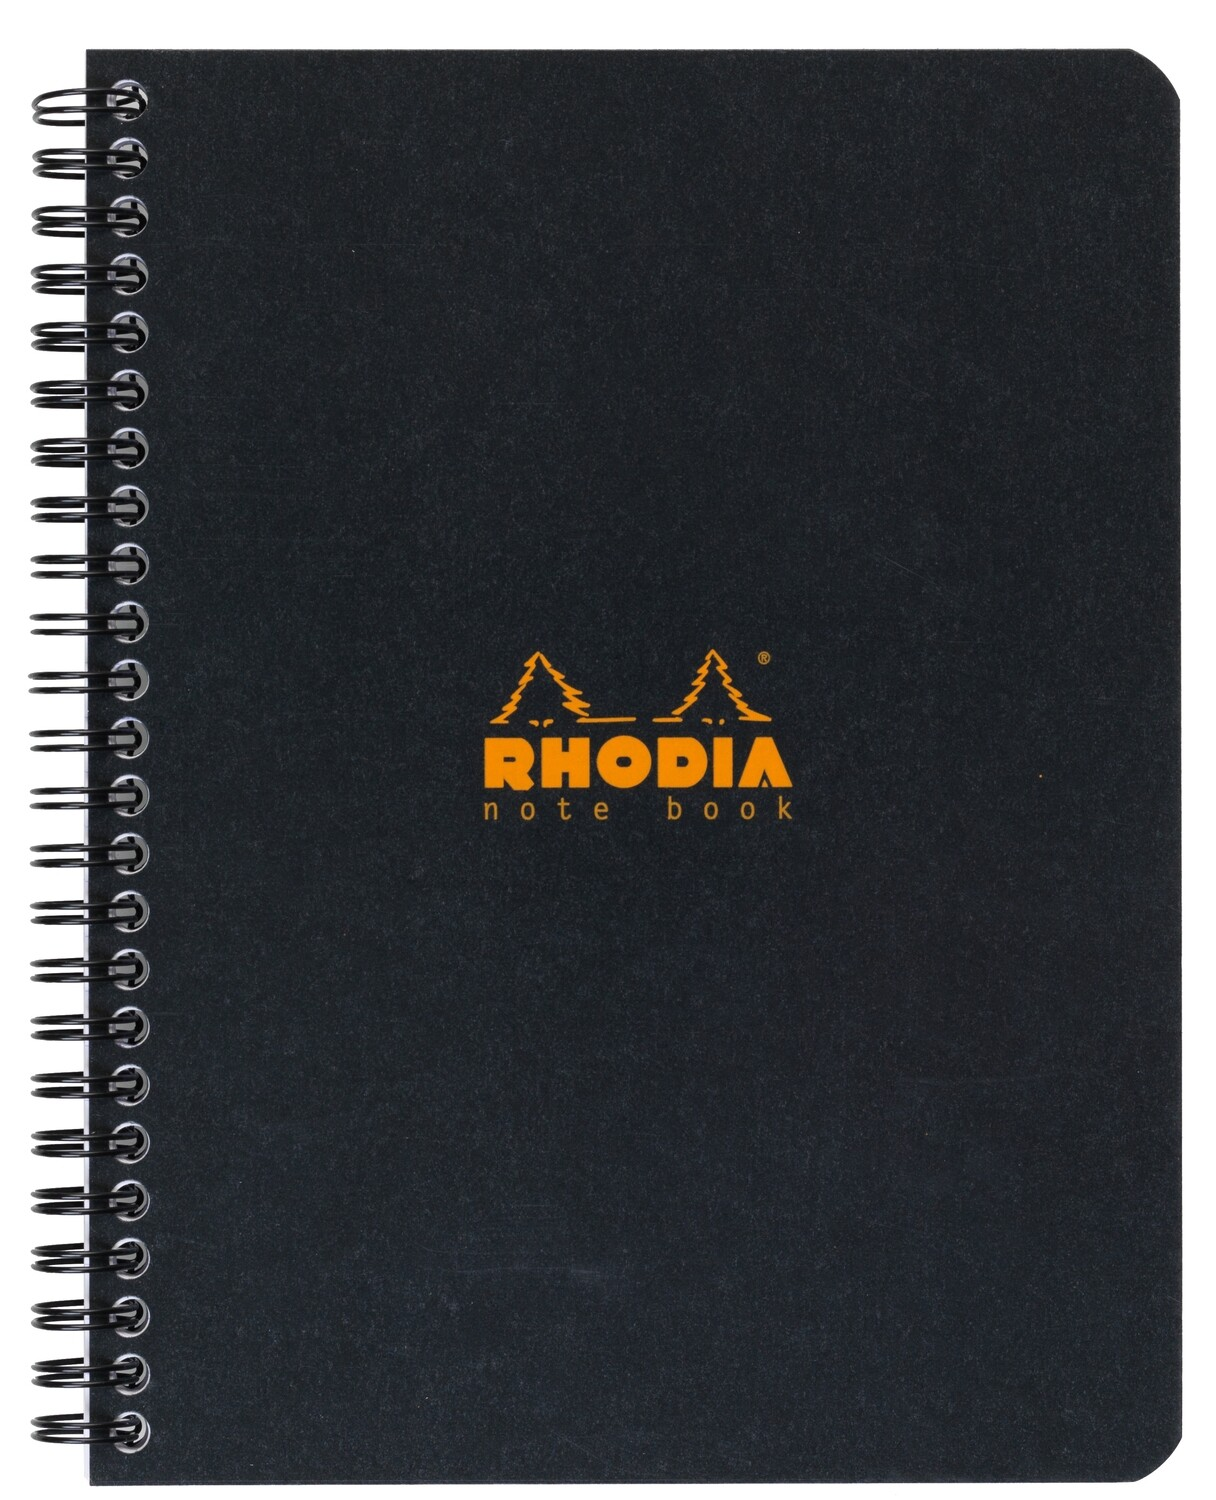 Notebook, Rhodia, Lined Black, A5, Sidecoil